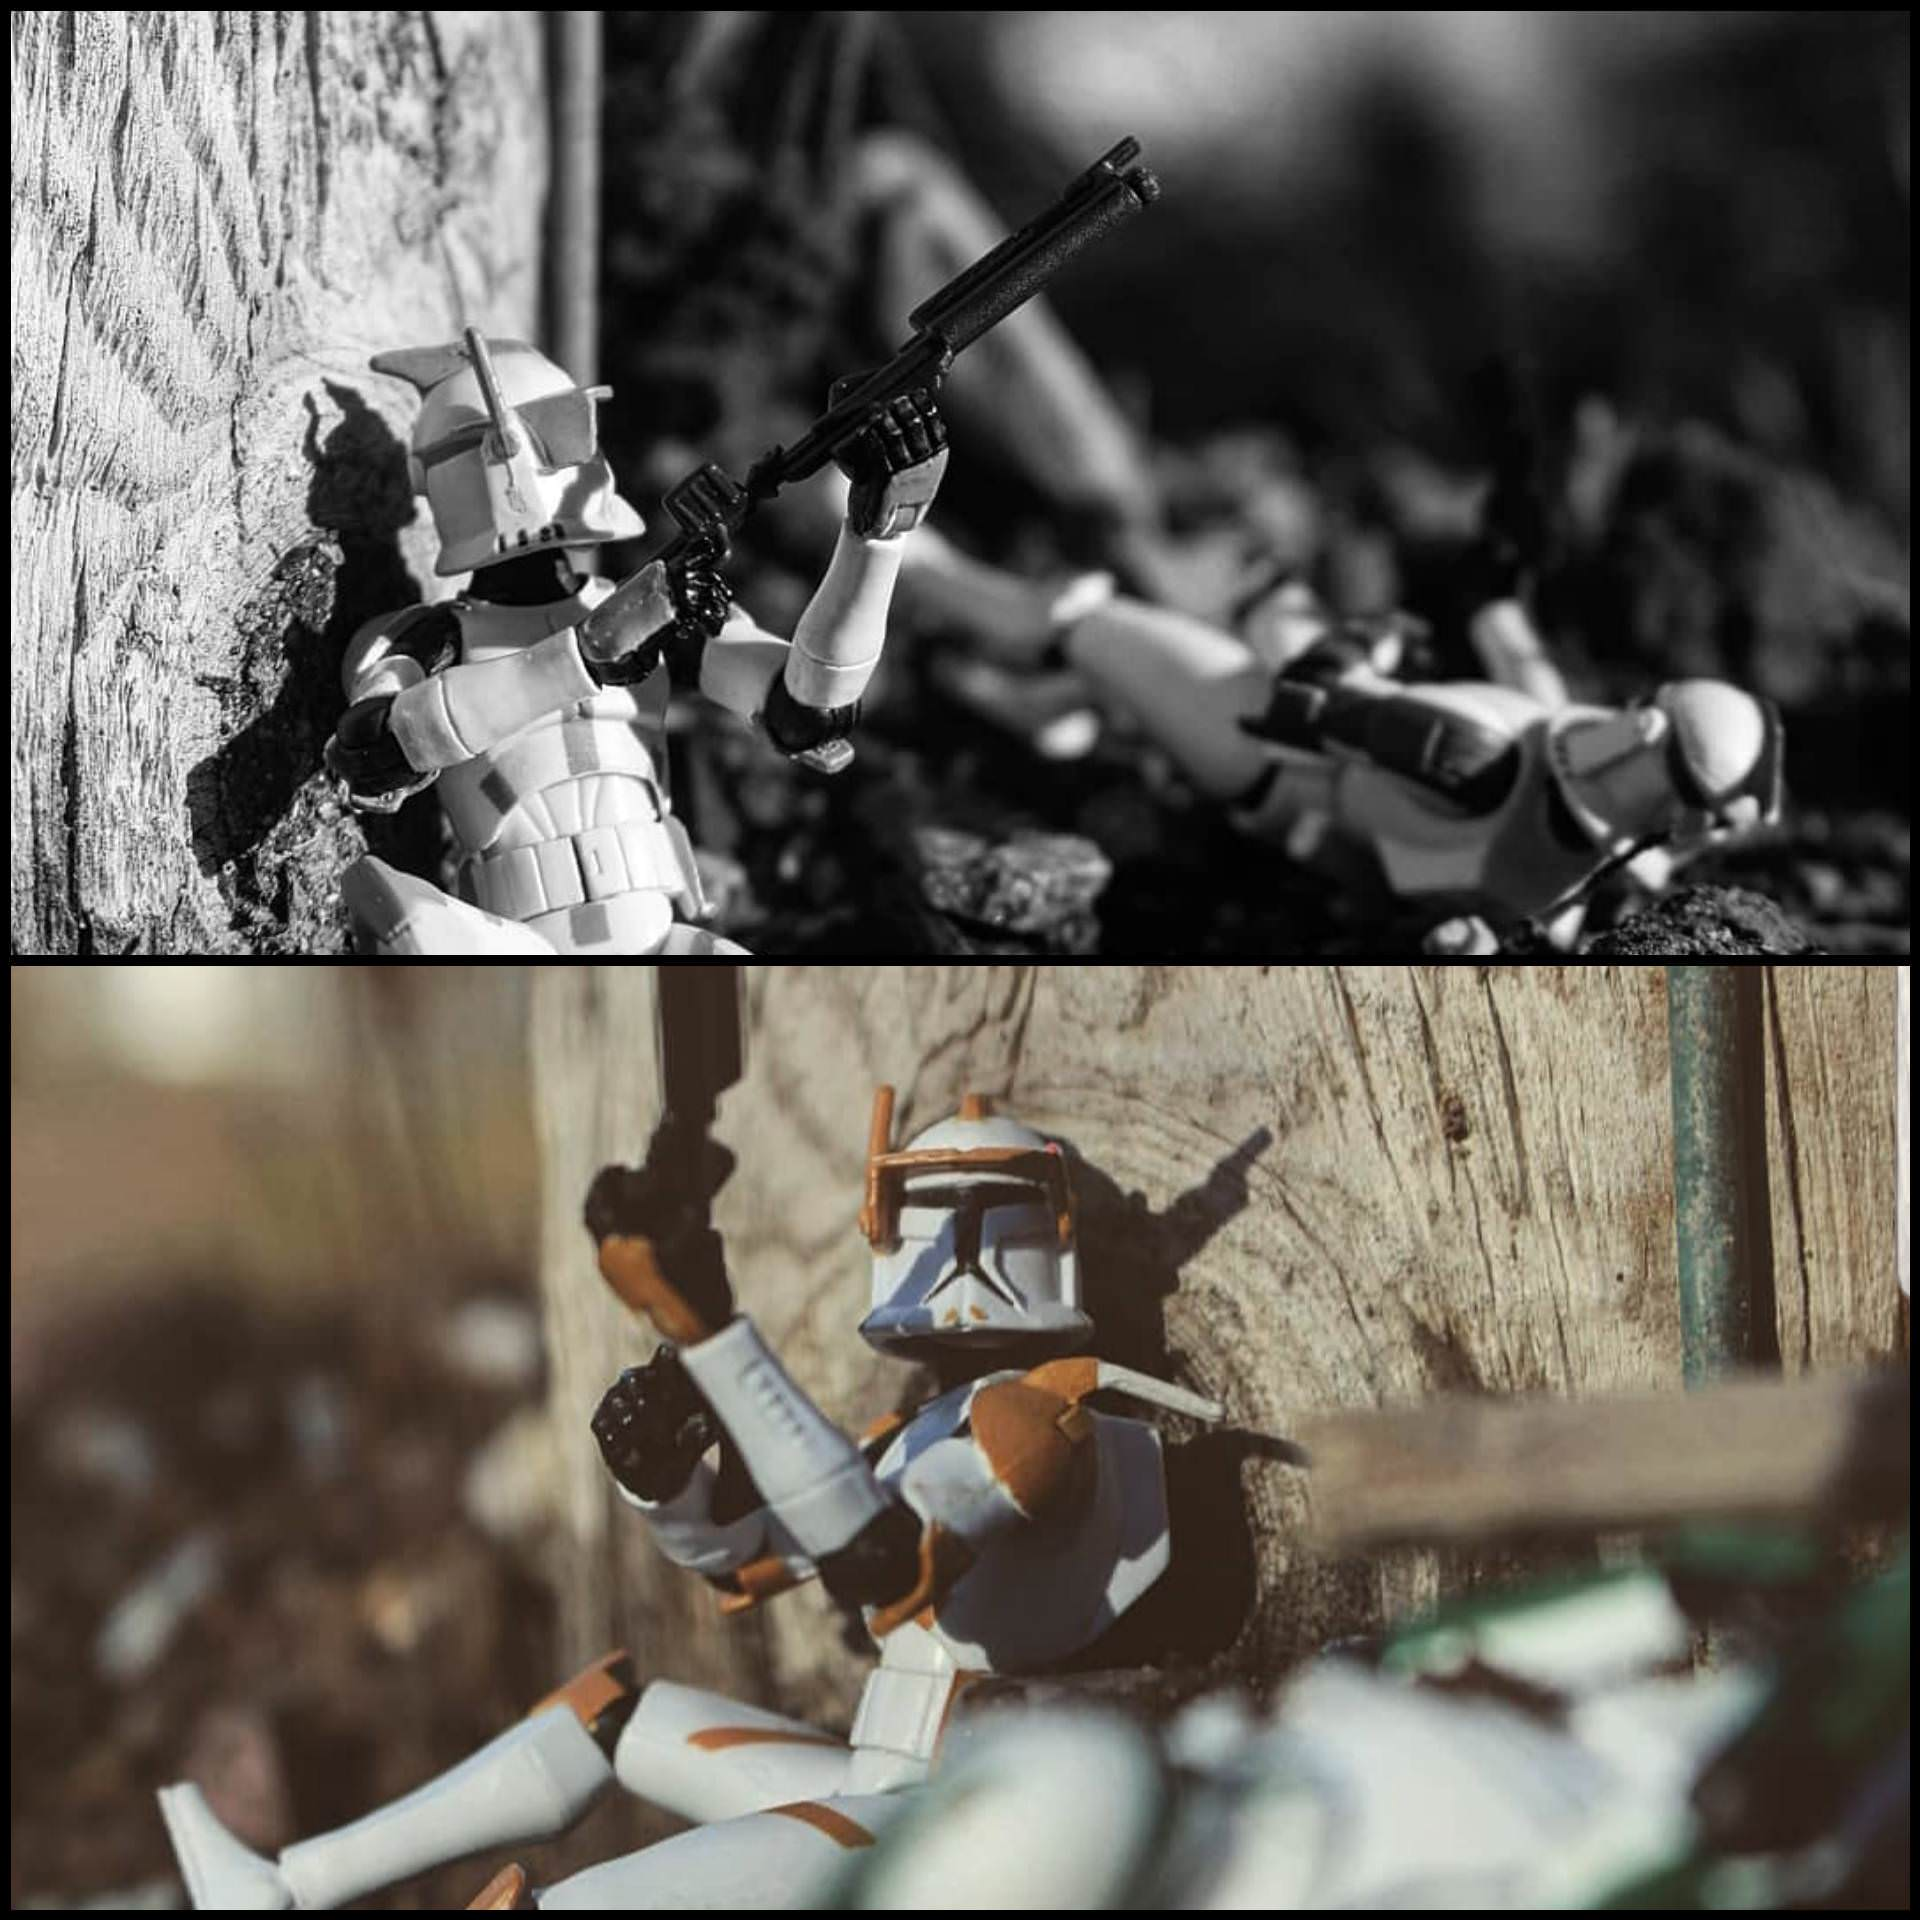 Took some action figure photos of clone troopers in battle